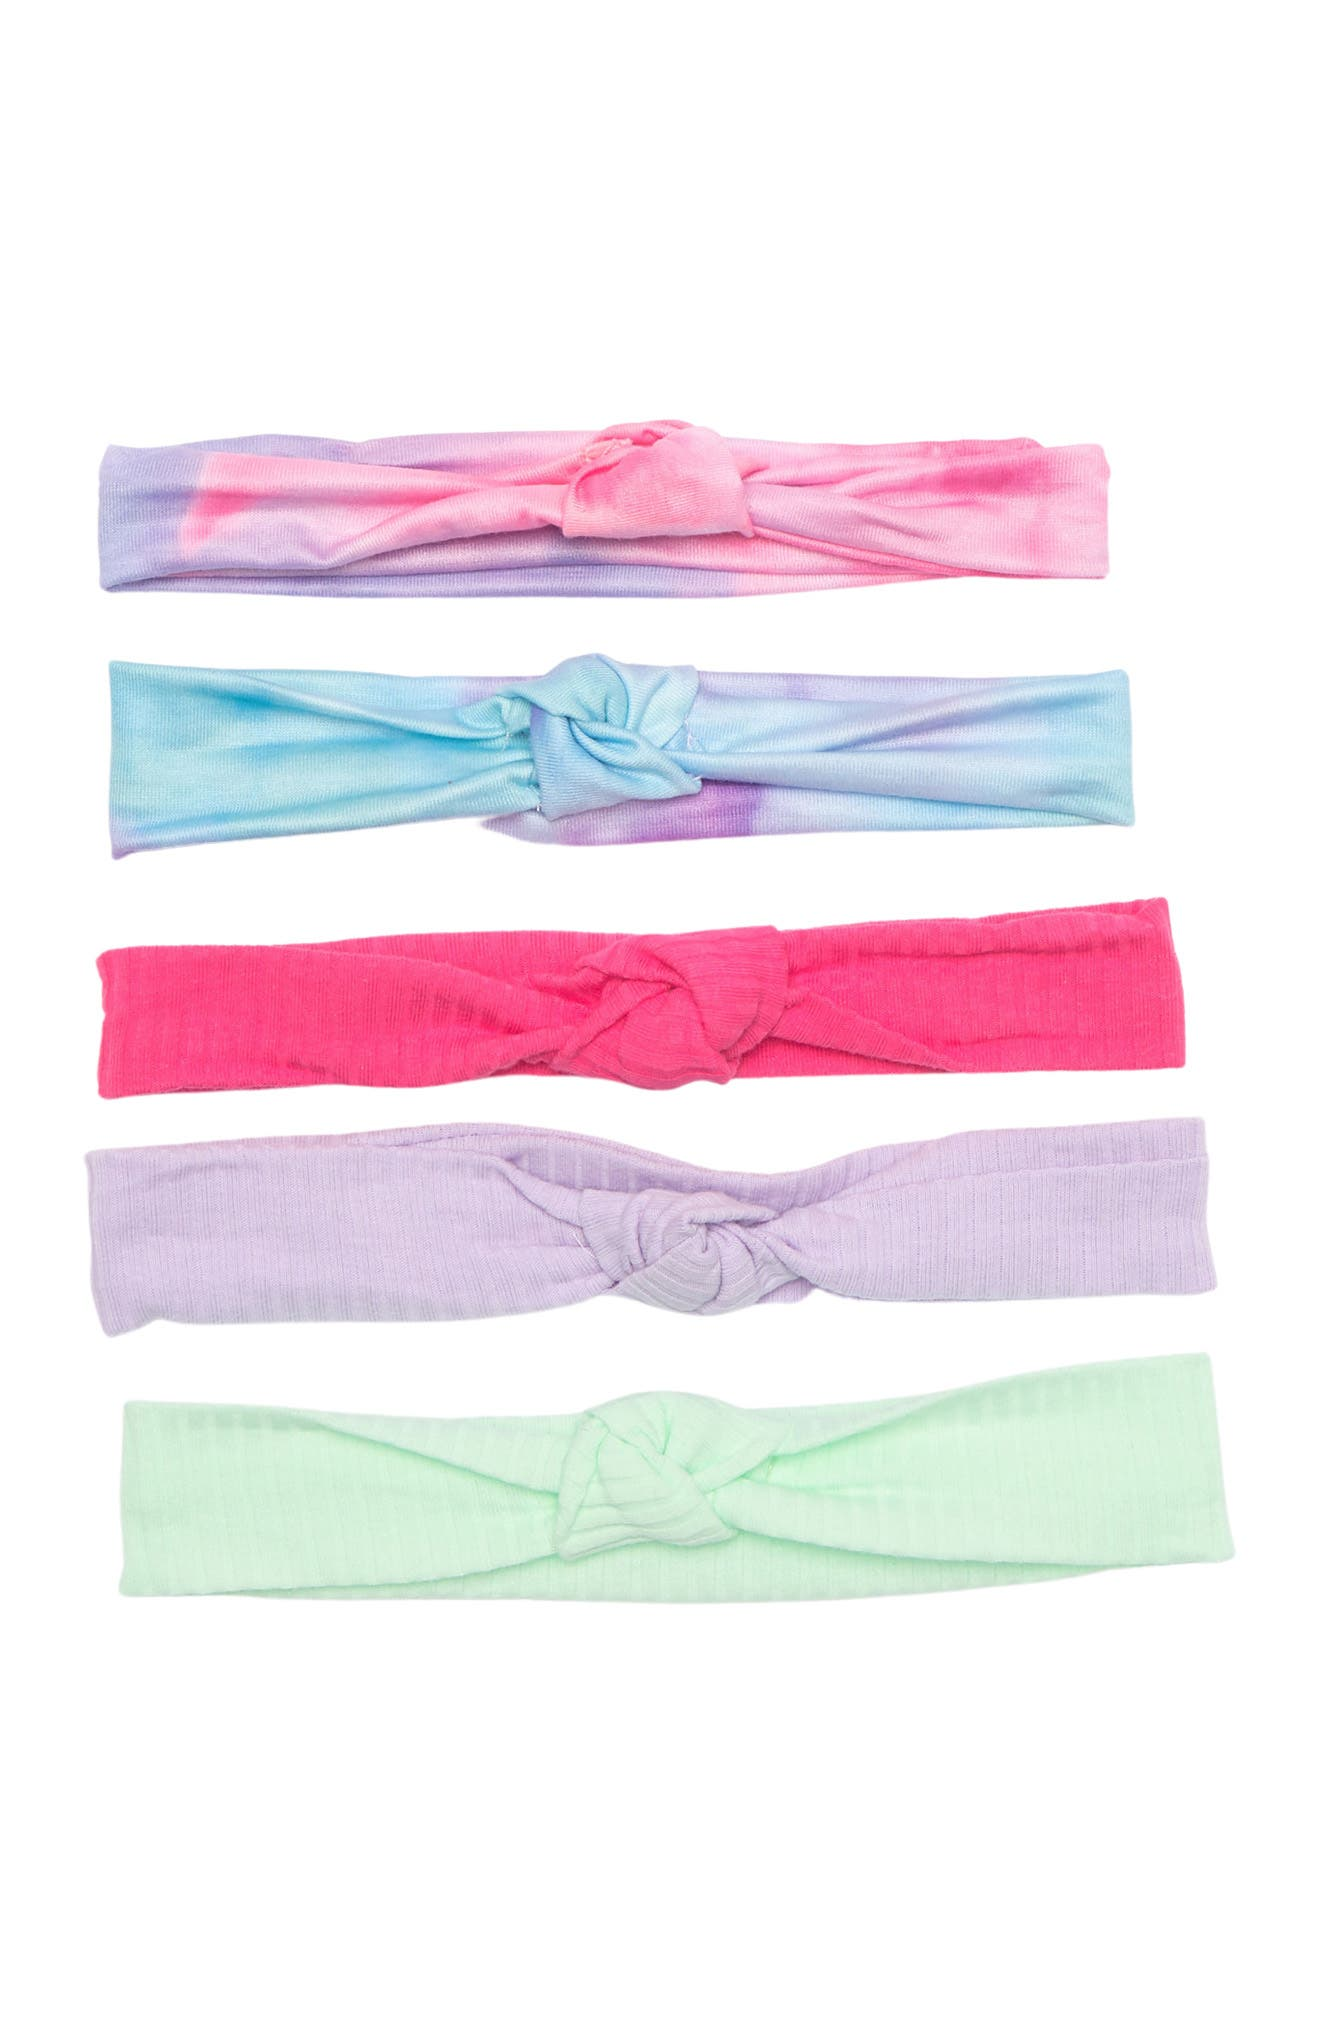 Image of CAPELLI OF NEW YORK Knotted Headwraps - Set of 5